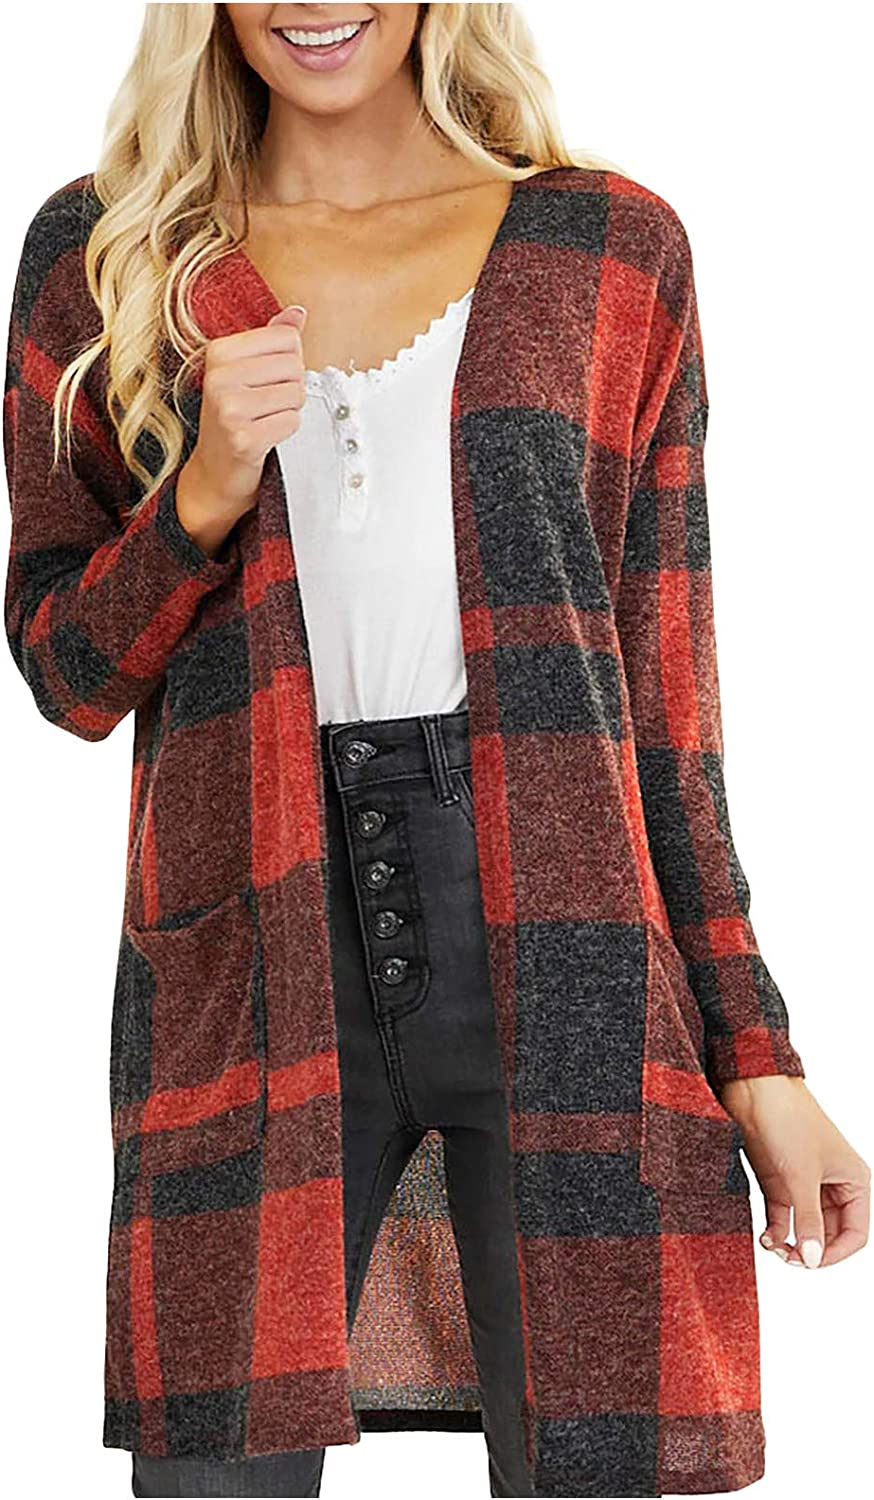 Womens Plaid Long Sleeve Open Front Cardigan Pockets Knit Sweater Coat